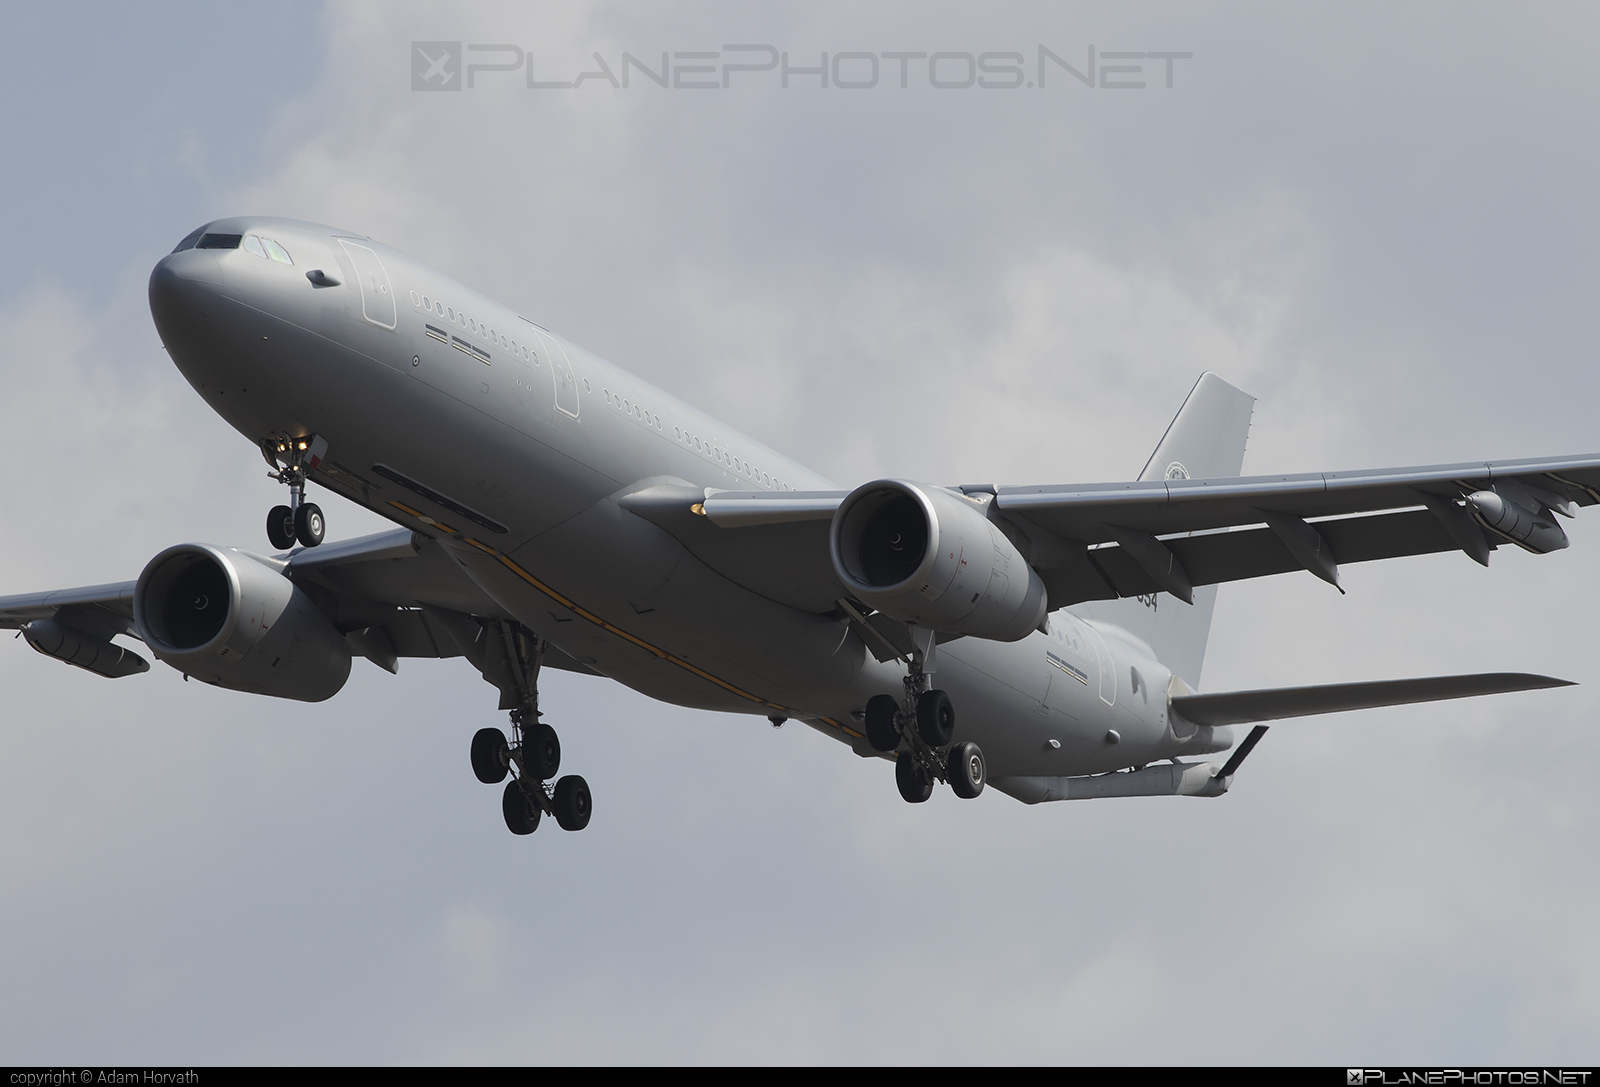 Airbus Military A330-243 MRTT - T-054 operated by Koninklijke Luchtmacht (Royal Netherlands Air Force) #a330 #a330mrtt #airbus330 #airbusmilitary #koninklijkeluchtmacht #royalnetherlandsairforce